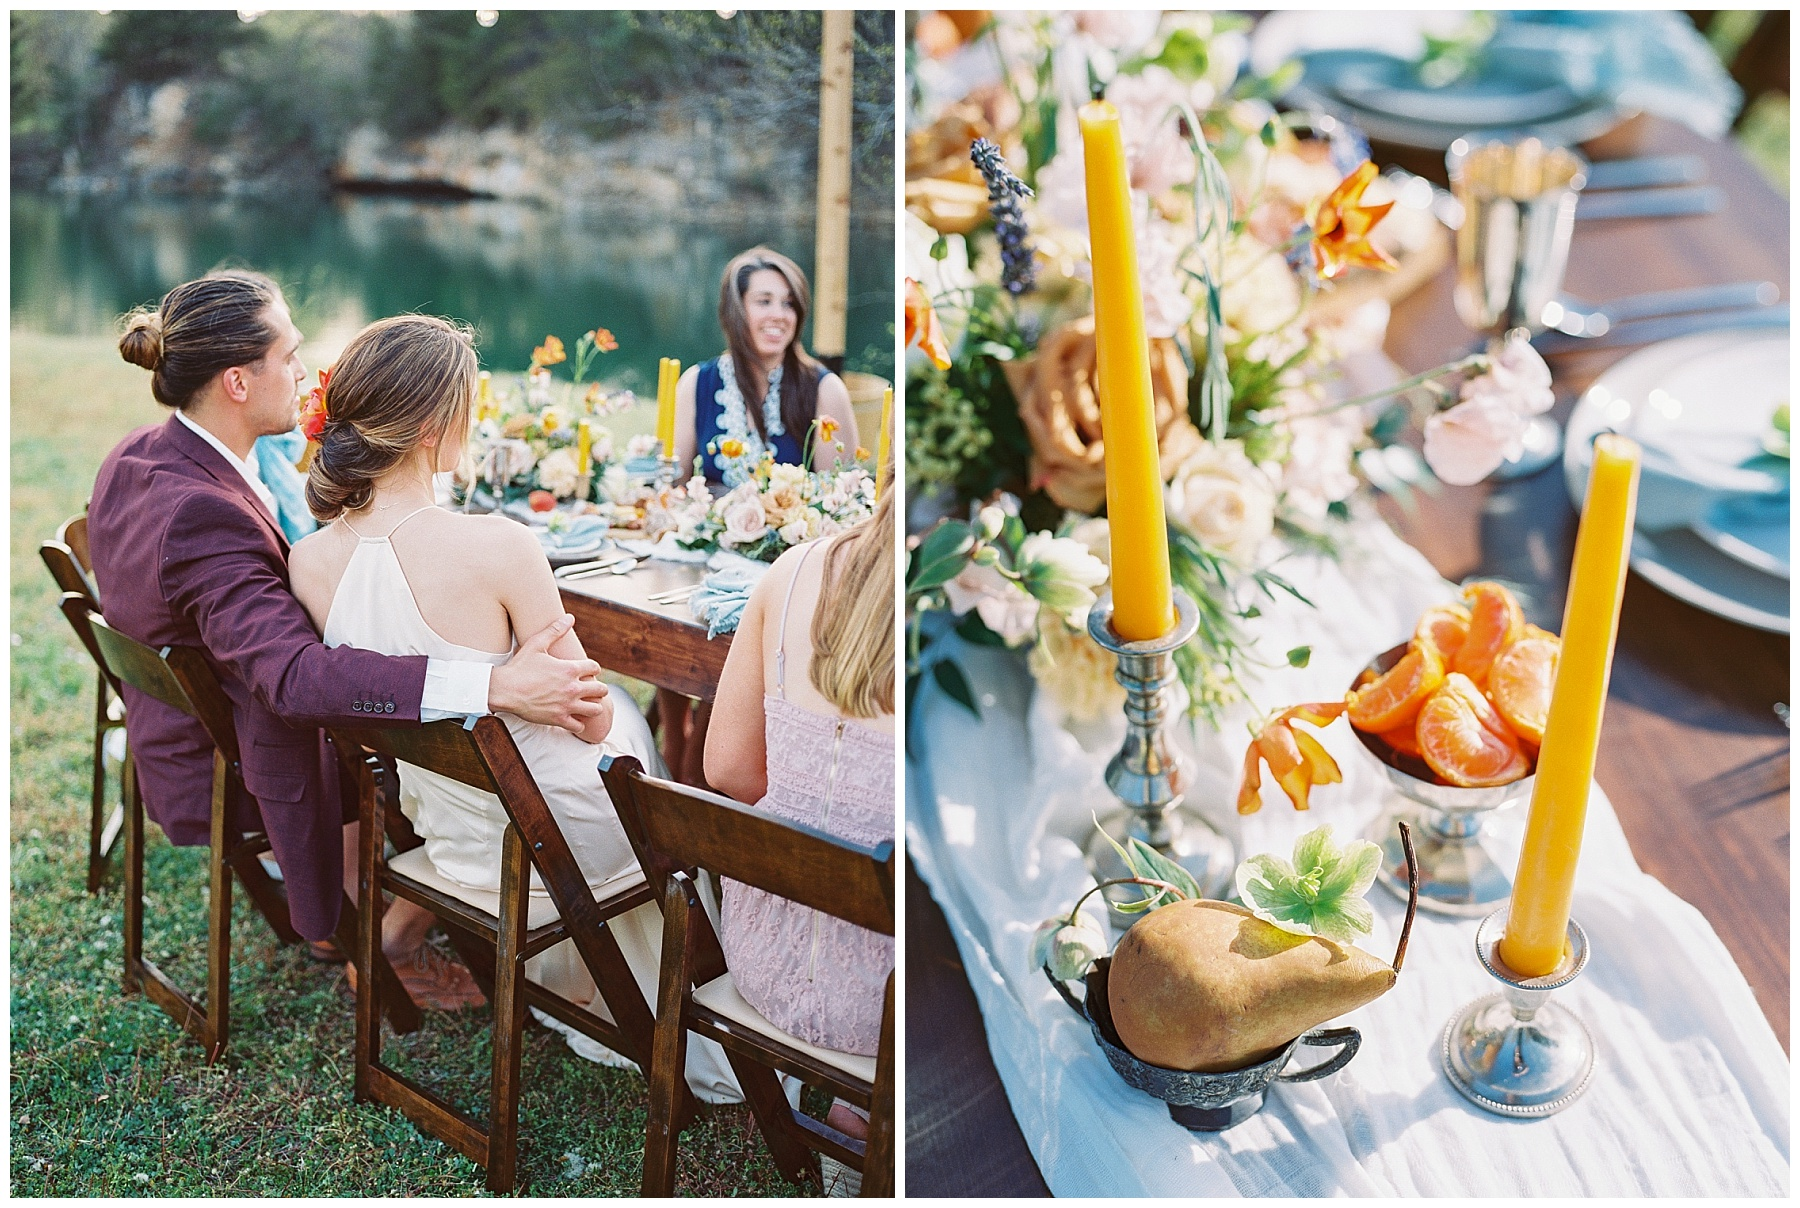 Intimate Spanish and French Inspired Destination Wedding with Lakeside Dinner Party at Dusk at Wildcliff by Kelsi Kliethermes Photography Best Missouri and Maui Wedding Photographer_0044.jpg